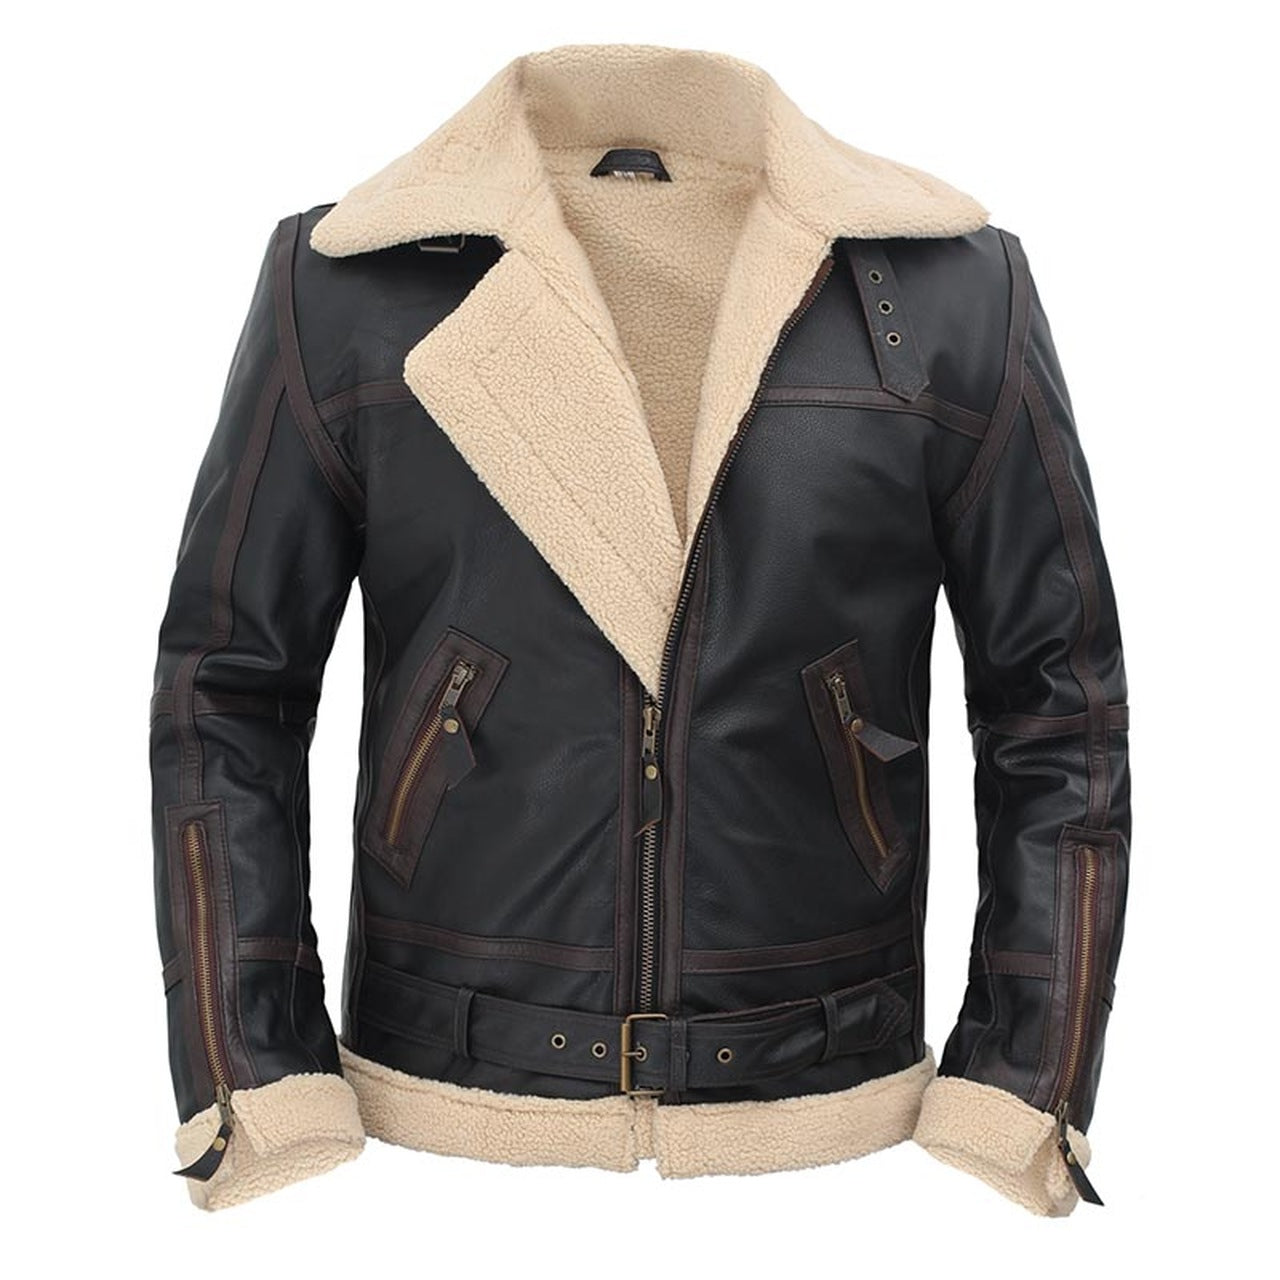 Shearling Geniune Leather Jacket - Leather Jacket